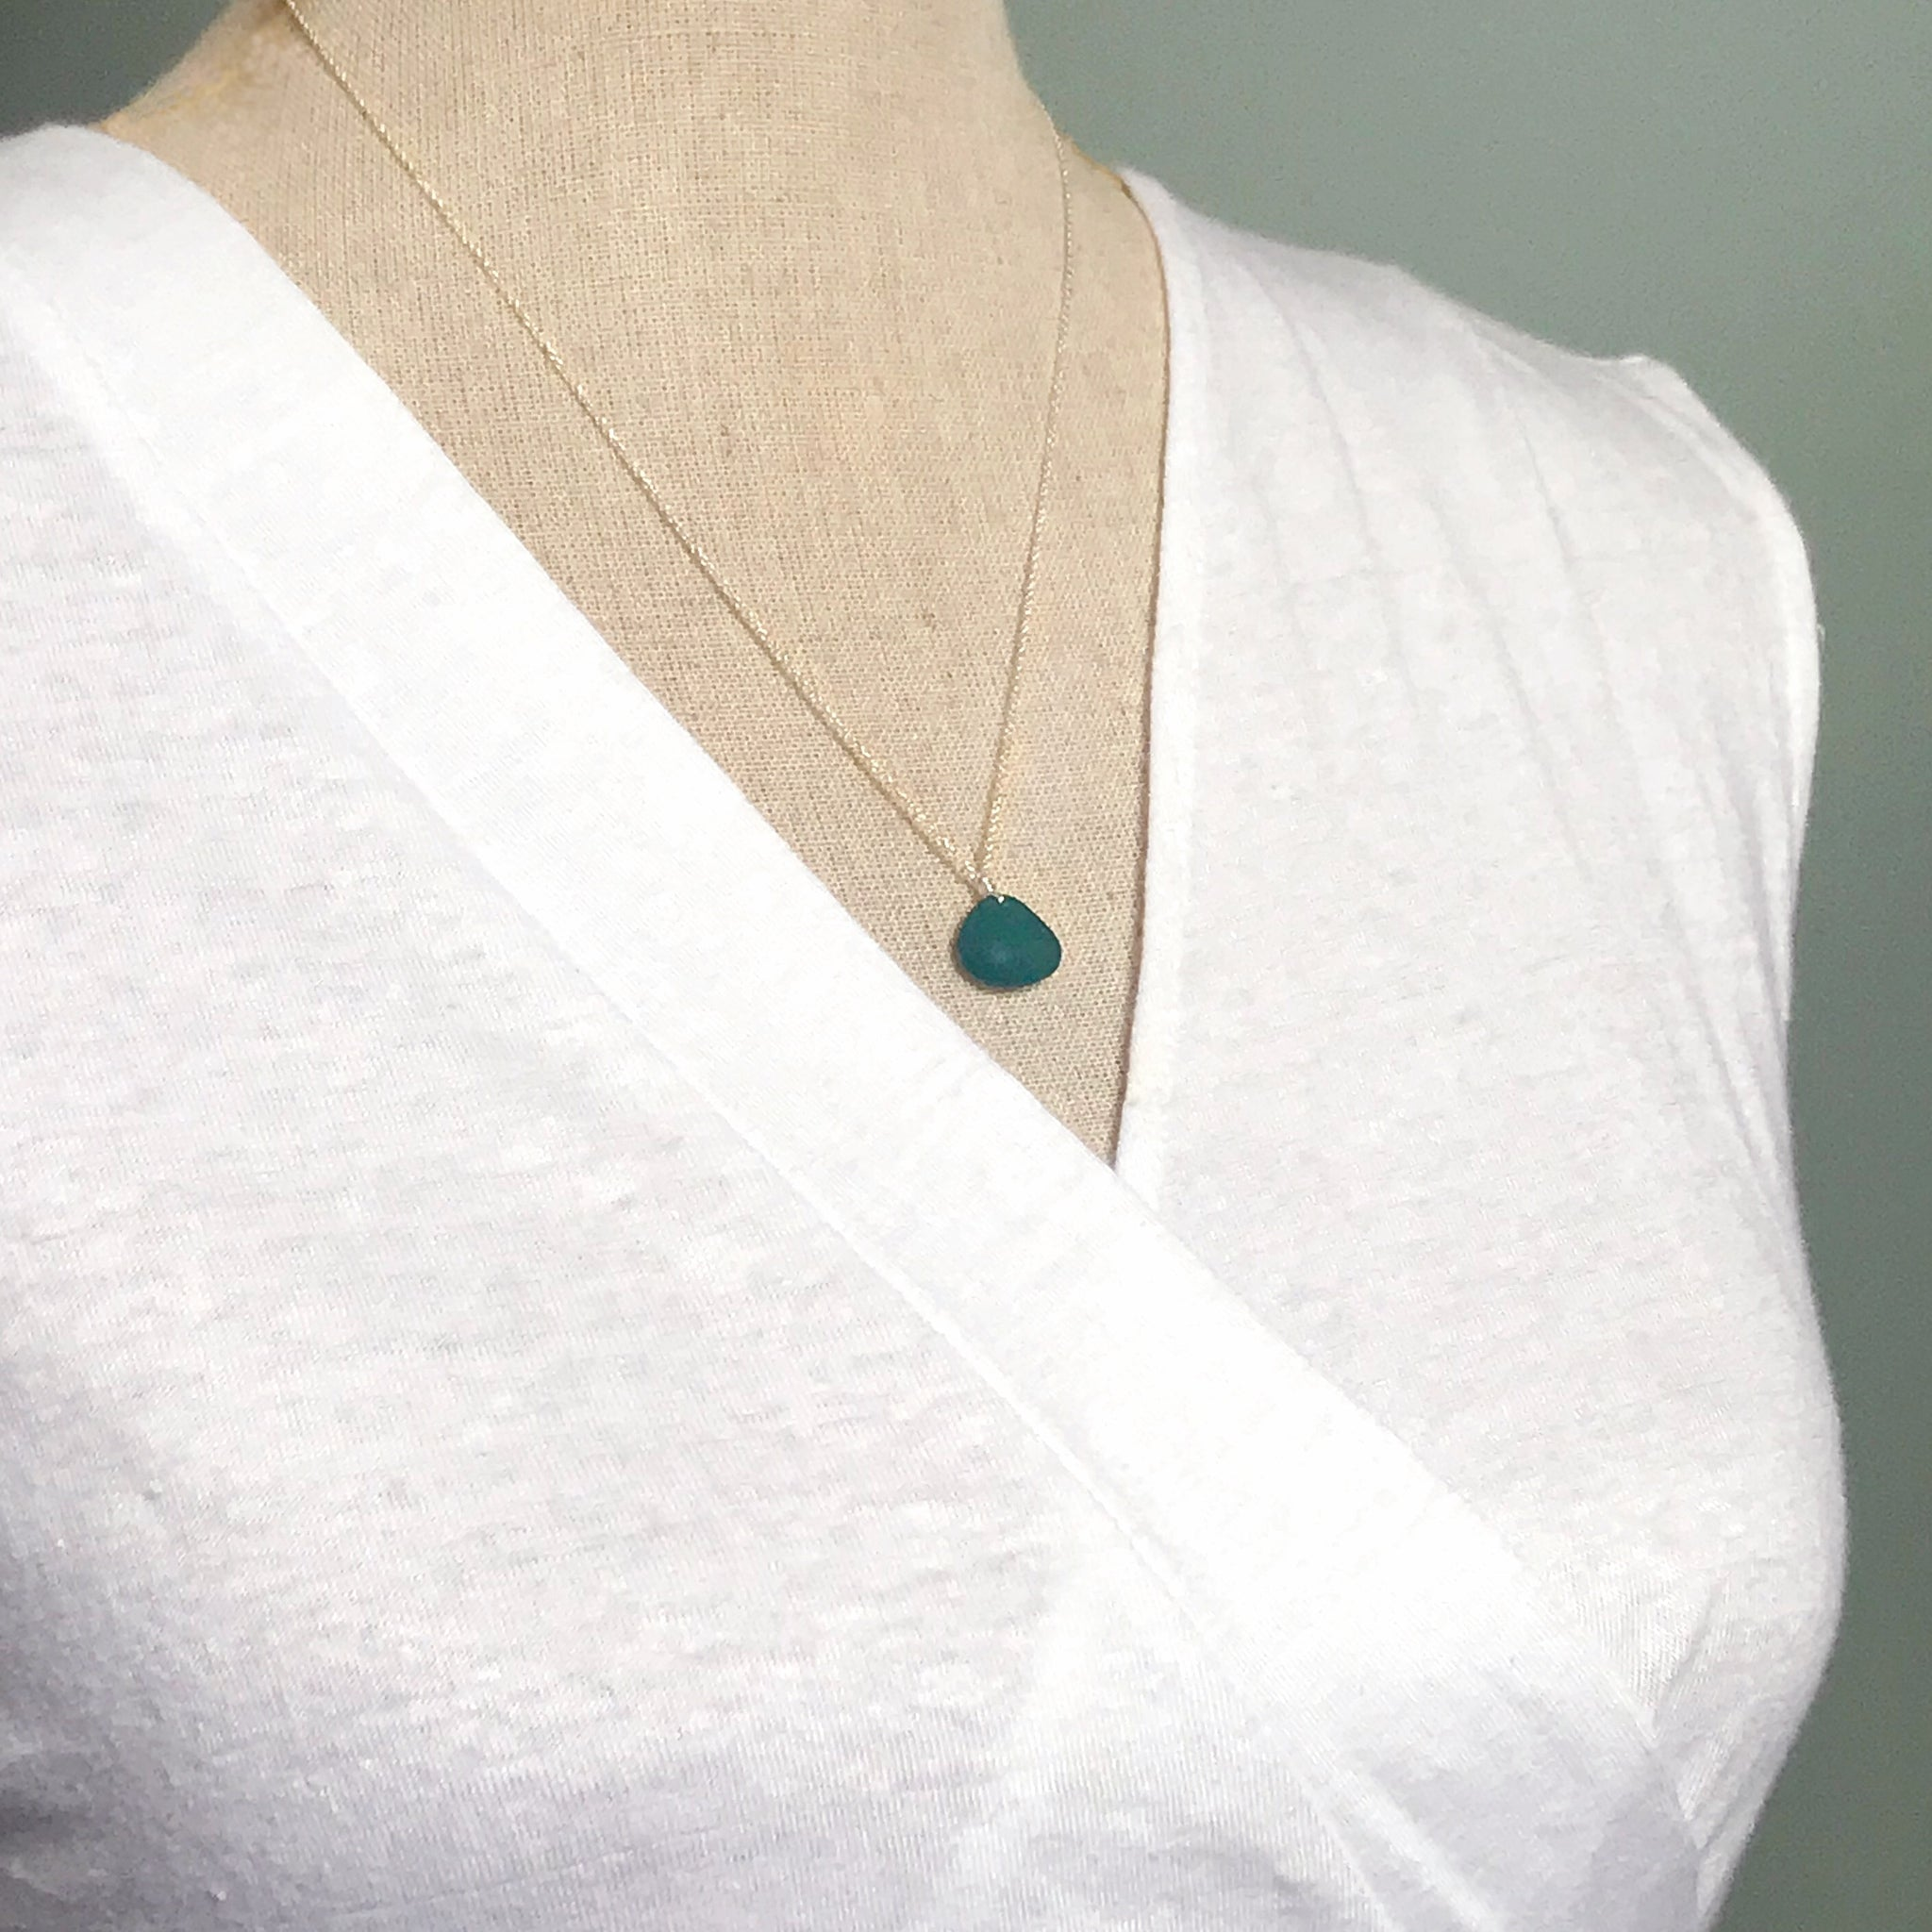 Short Silver Necklace with Teal Seaglass - kriket-broadhurst